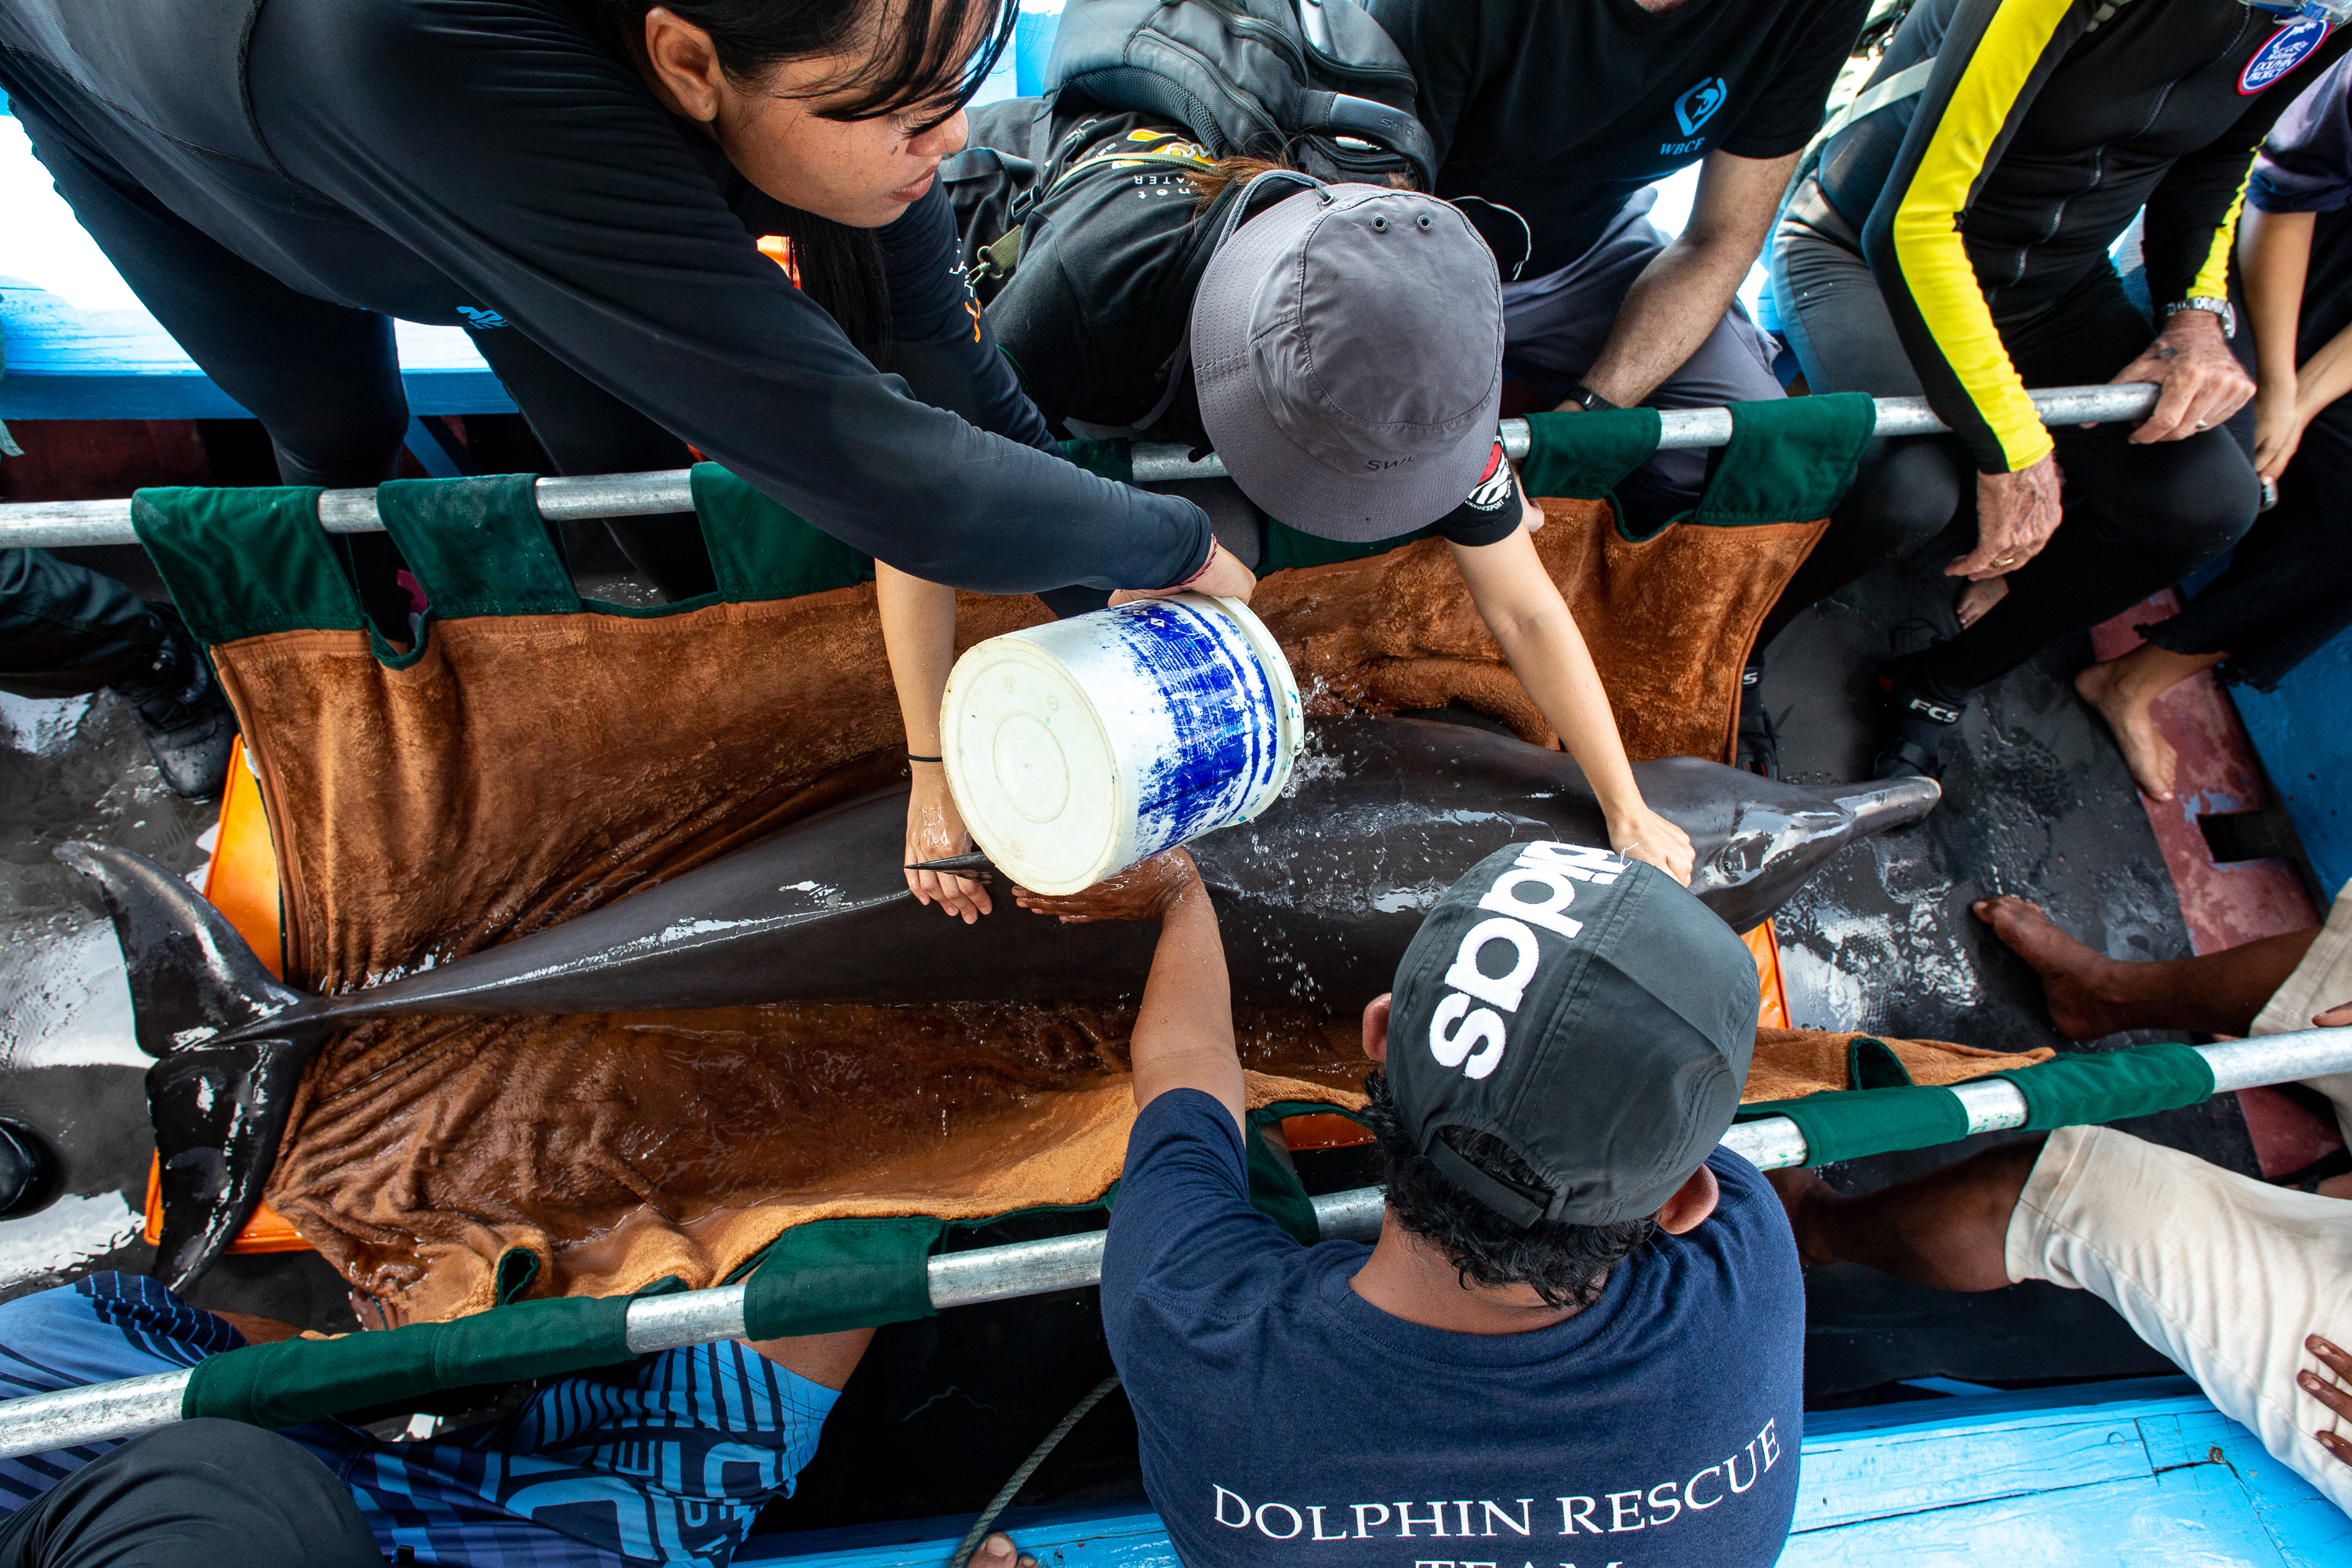 In transit to the Bali Dolphin Sanctuary, Rocky and Rambo's comfort and well-being are ensured by our team, Bali, Indonesia. Credit: DolphinProject/Tim Calver